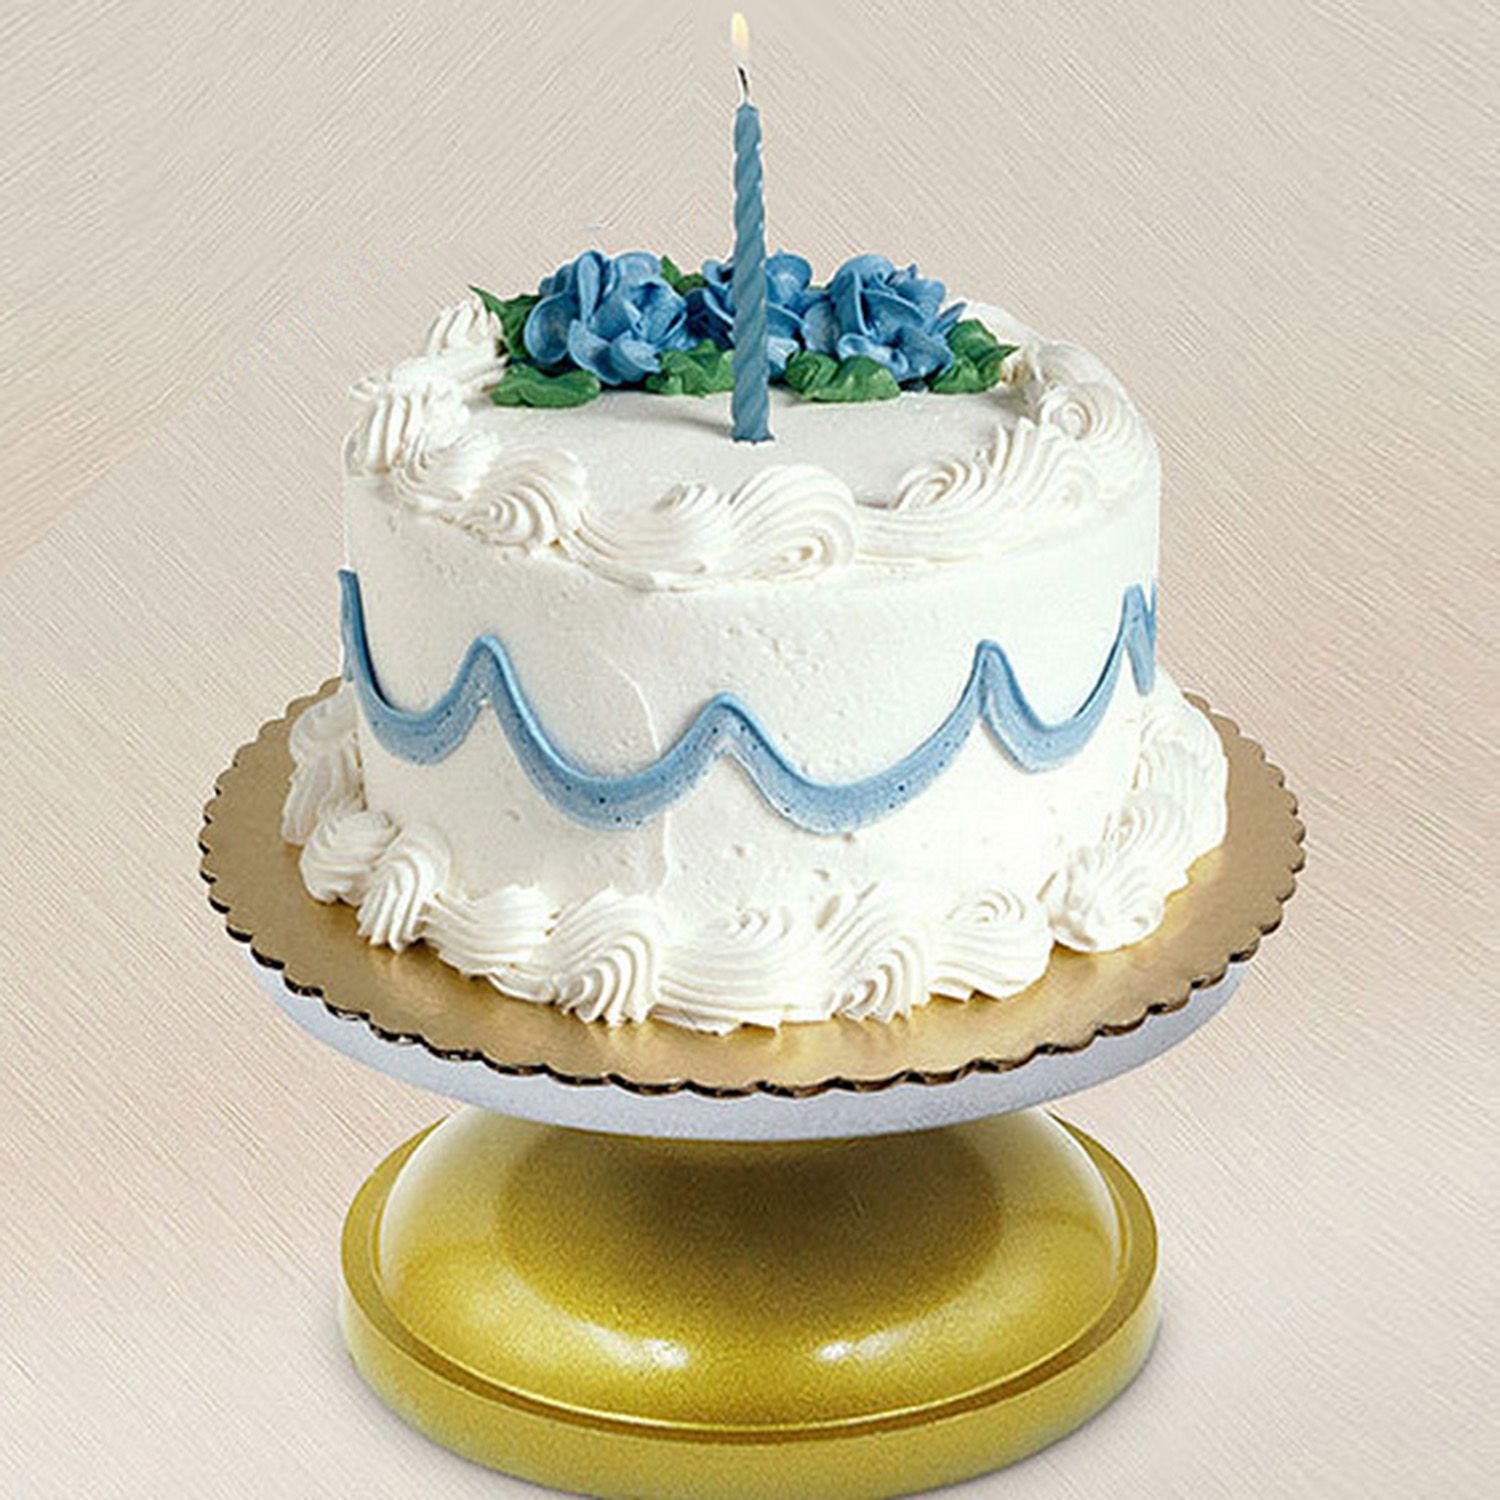 8 inch rotating revolving cake decorating display stand